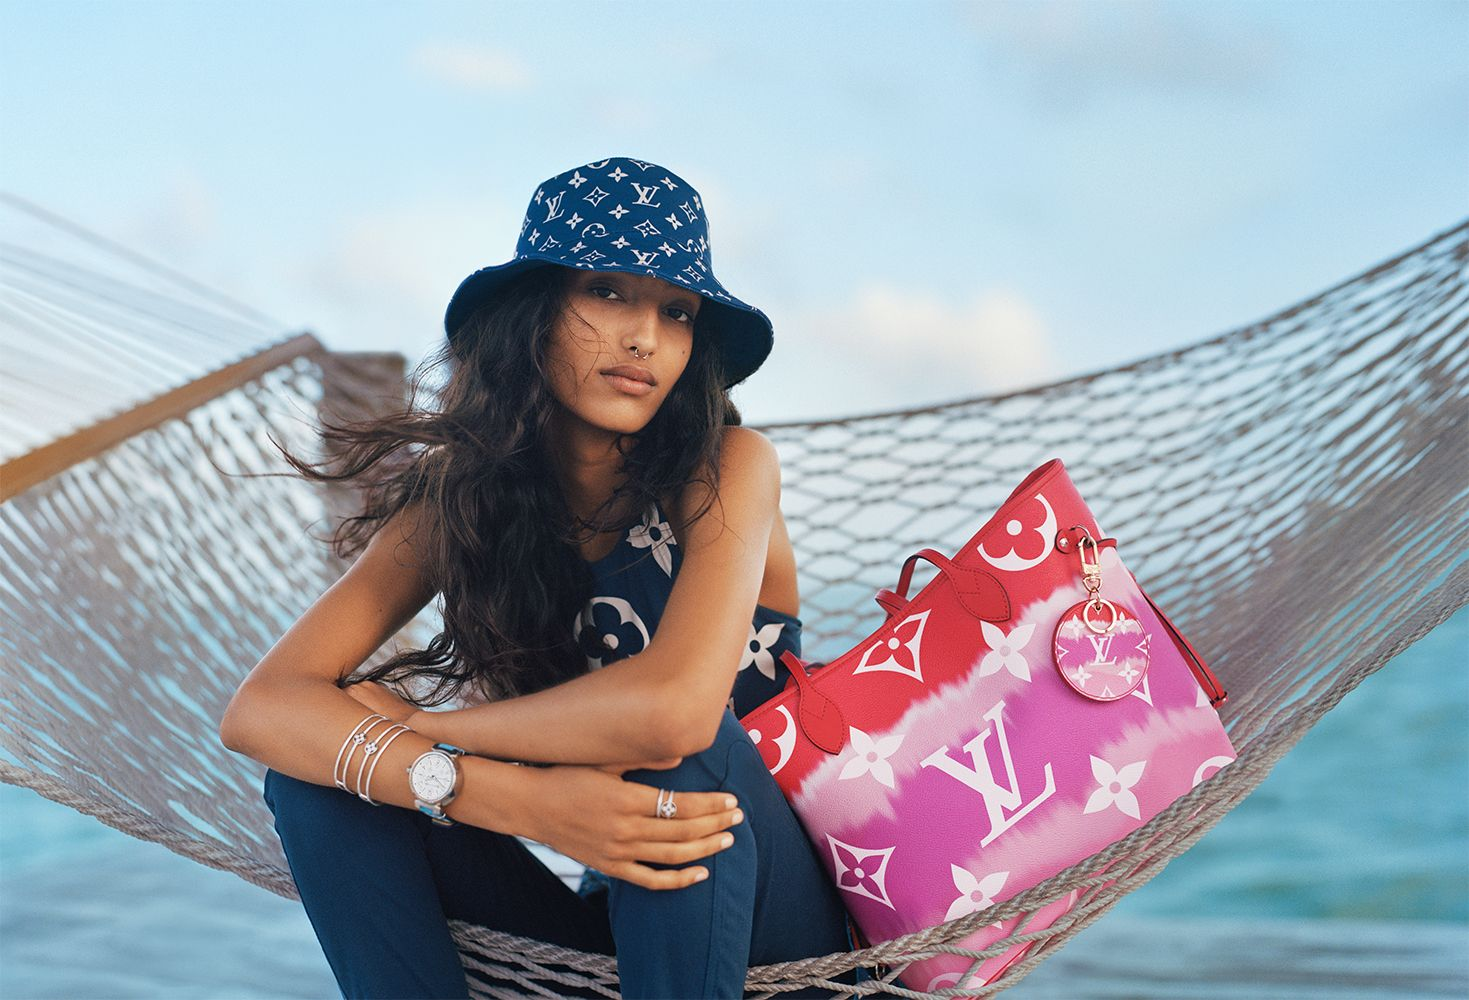 Louis Vuitton's Escale Collection is Here and Ready for Sunnier Days